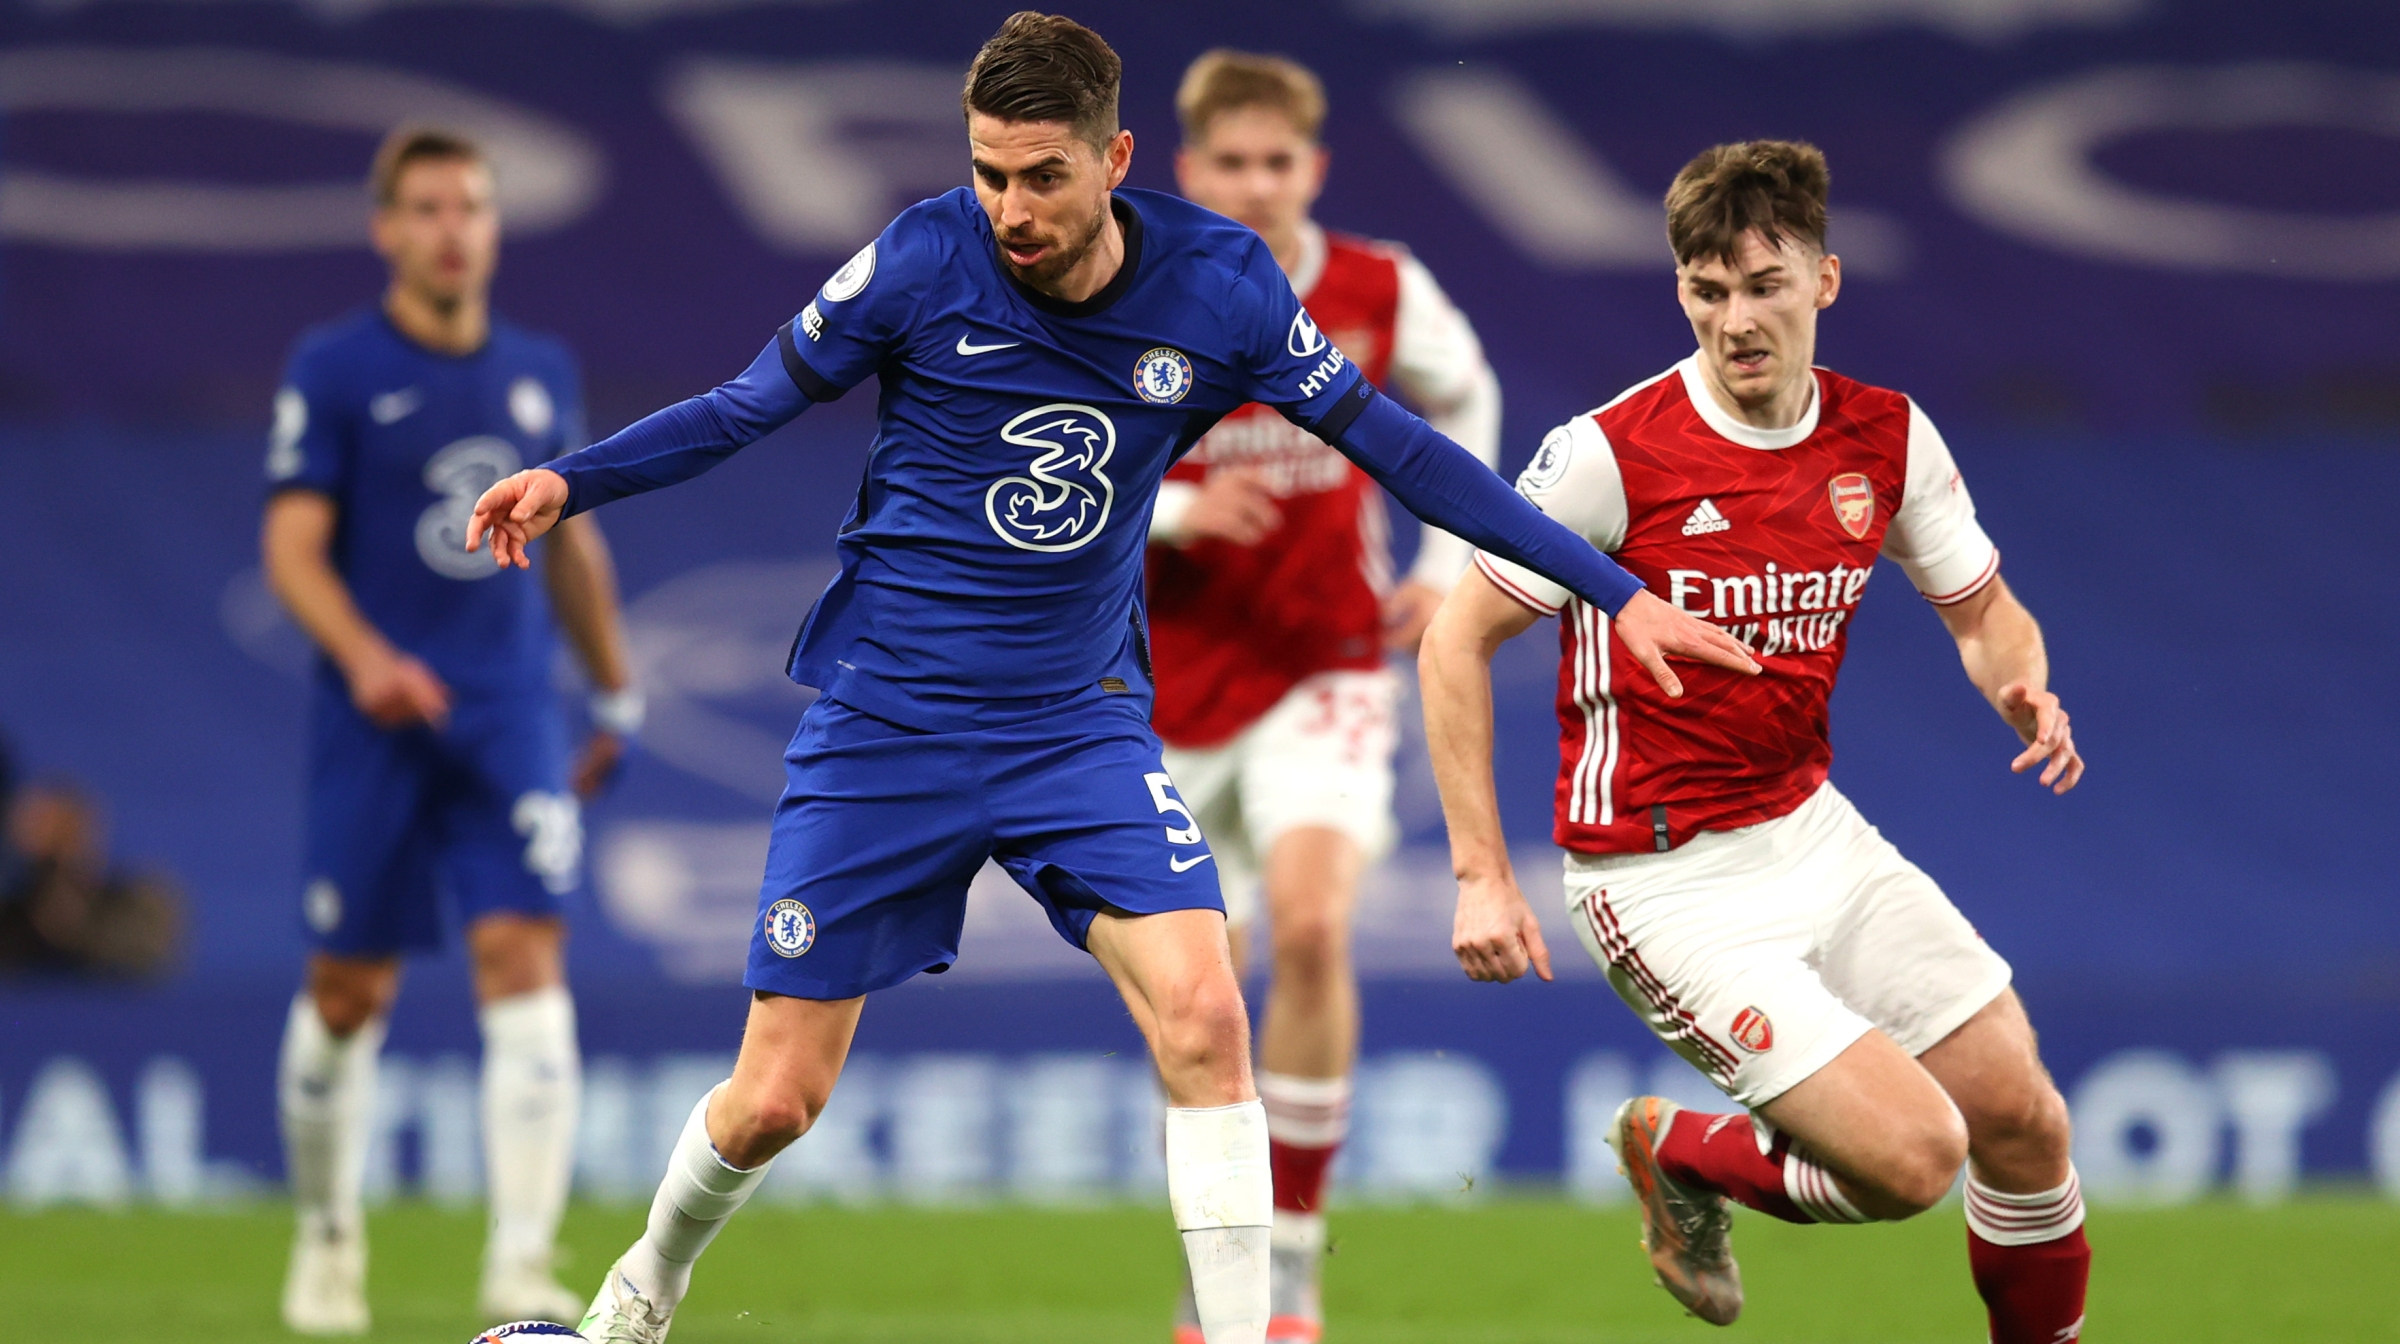 Jorginho of Chelsea battles for possession with Kieran Tierney of Arsenal during the Premier League match between Chelsea and Arsenal at Stamford Bridge on May 12, 2021 in London, England.